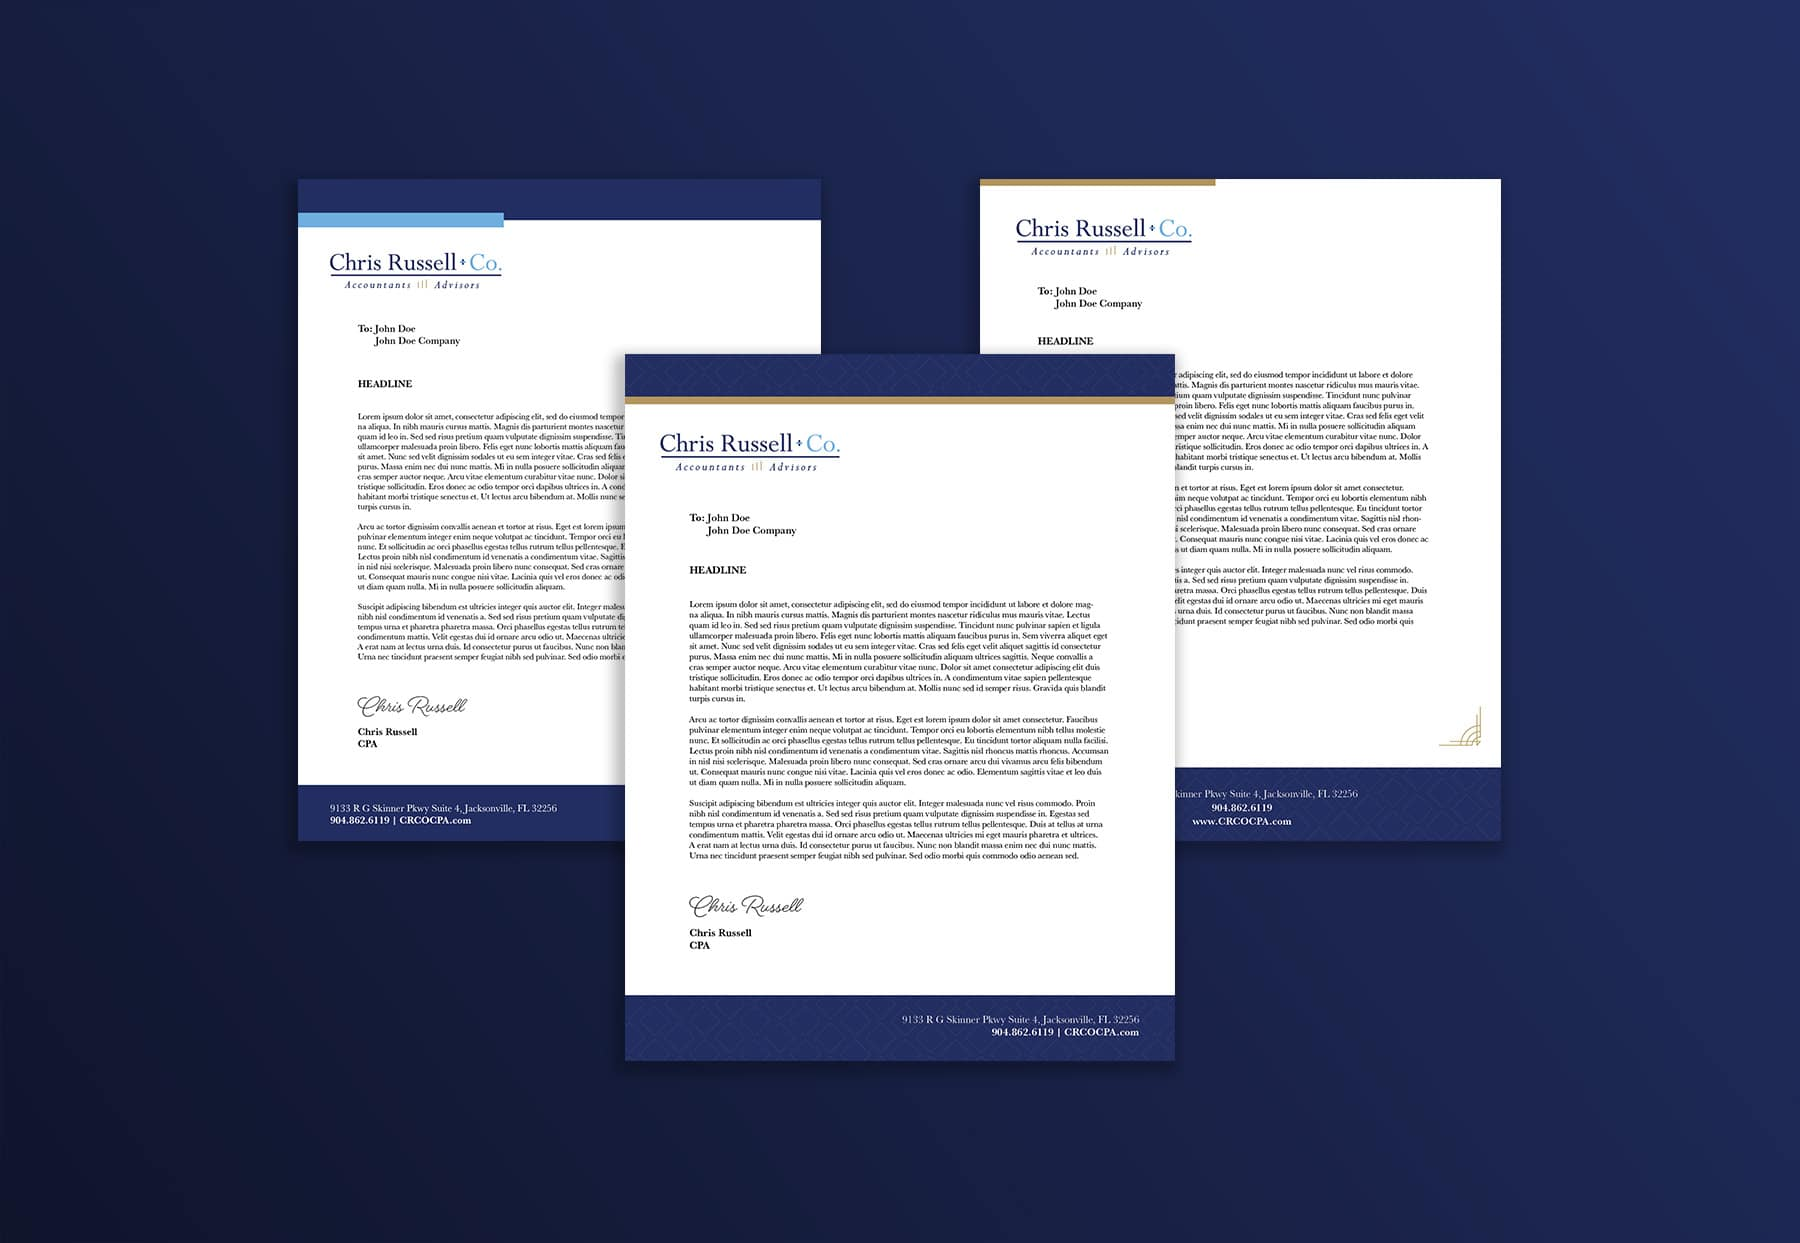 Chris Russell + Co. Letterhead Design mockup by digital marketing agency Beson4 in Jacksonville, Florida